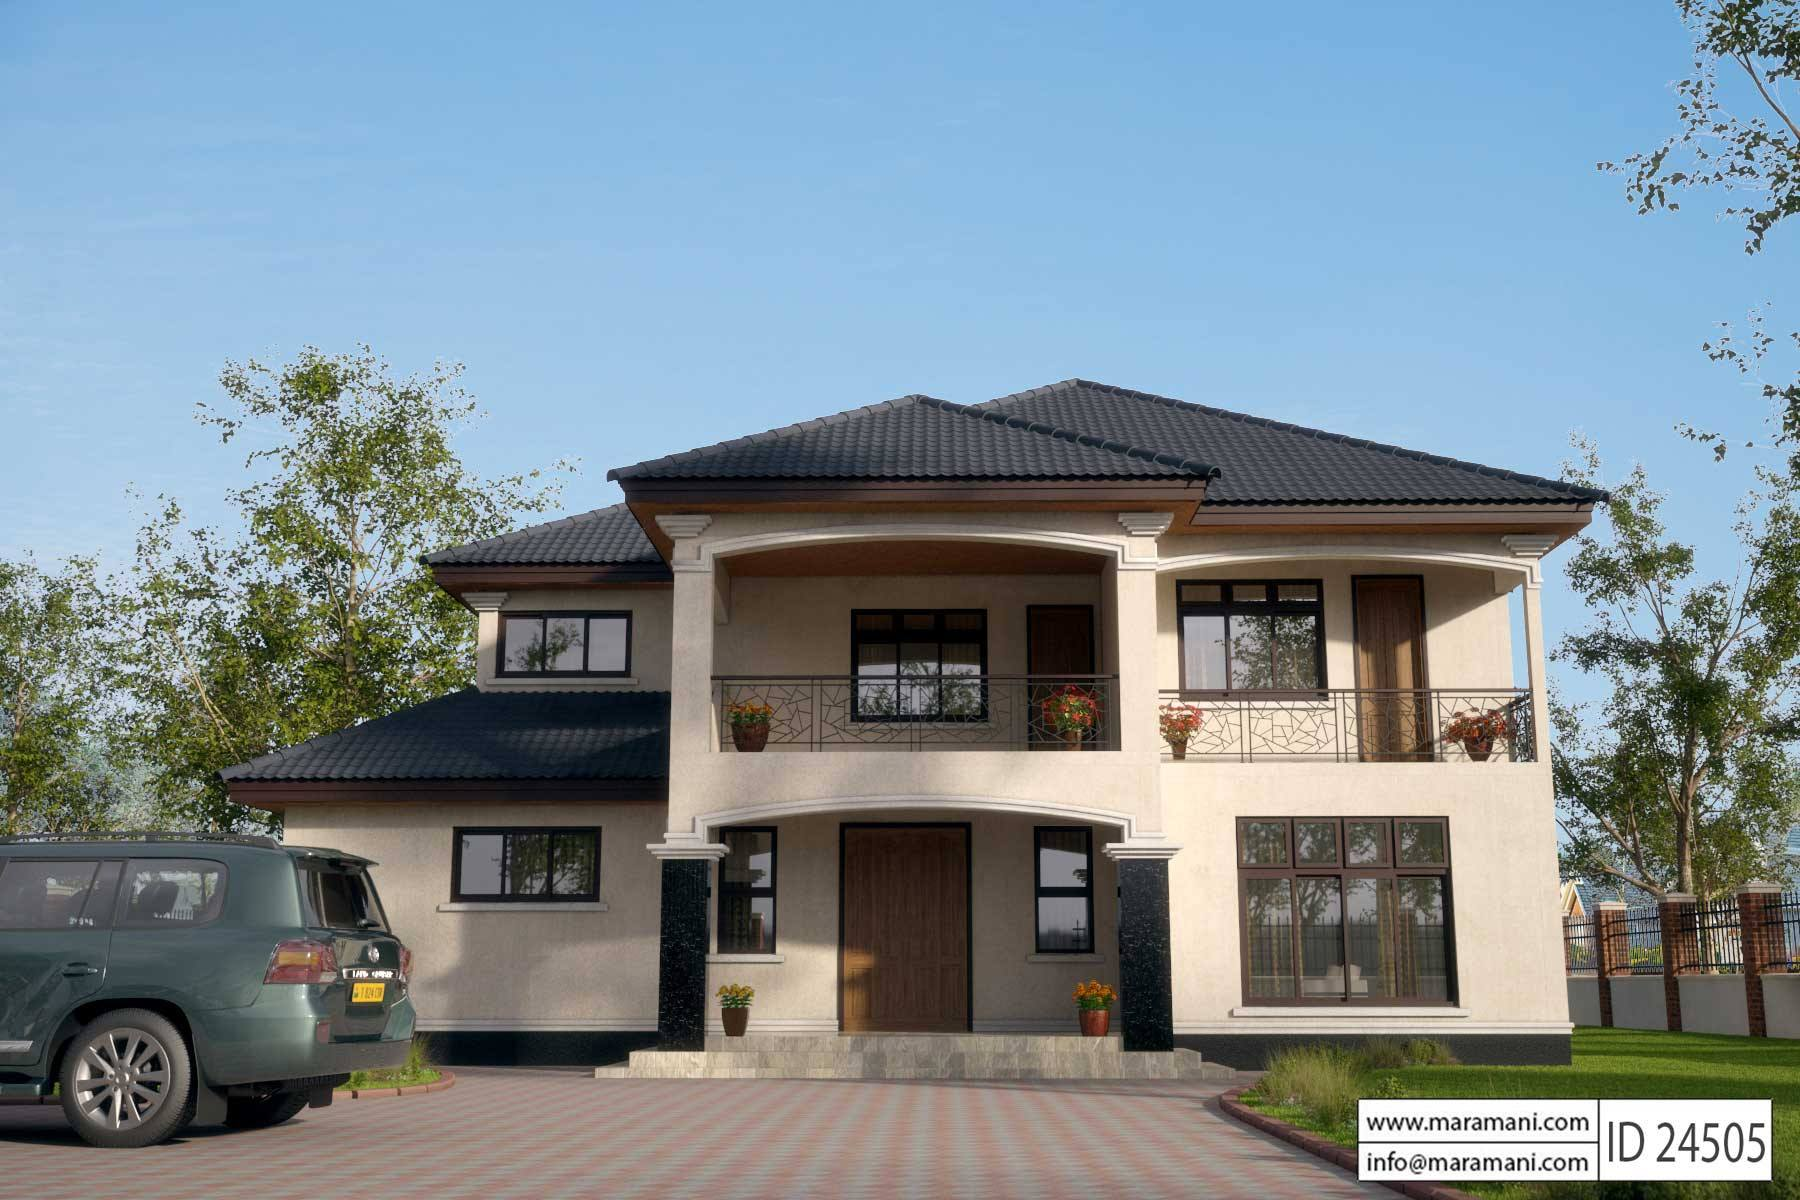 4 Bedroom House Plans South Africa